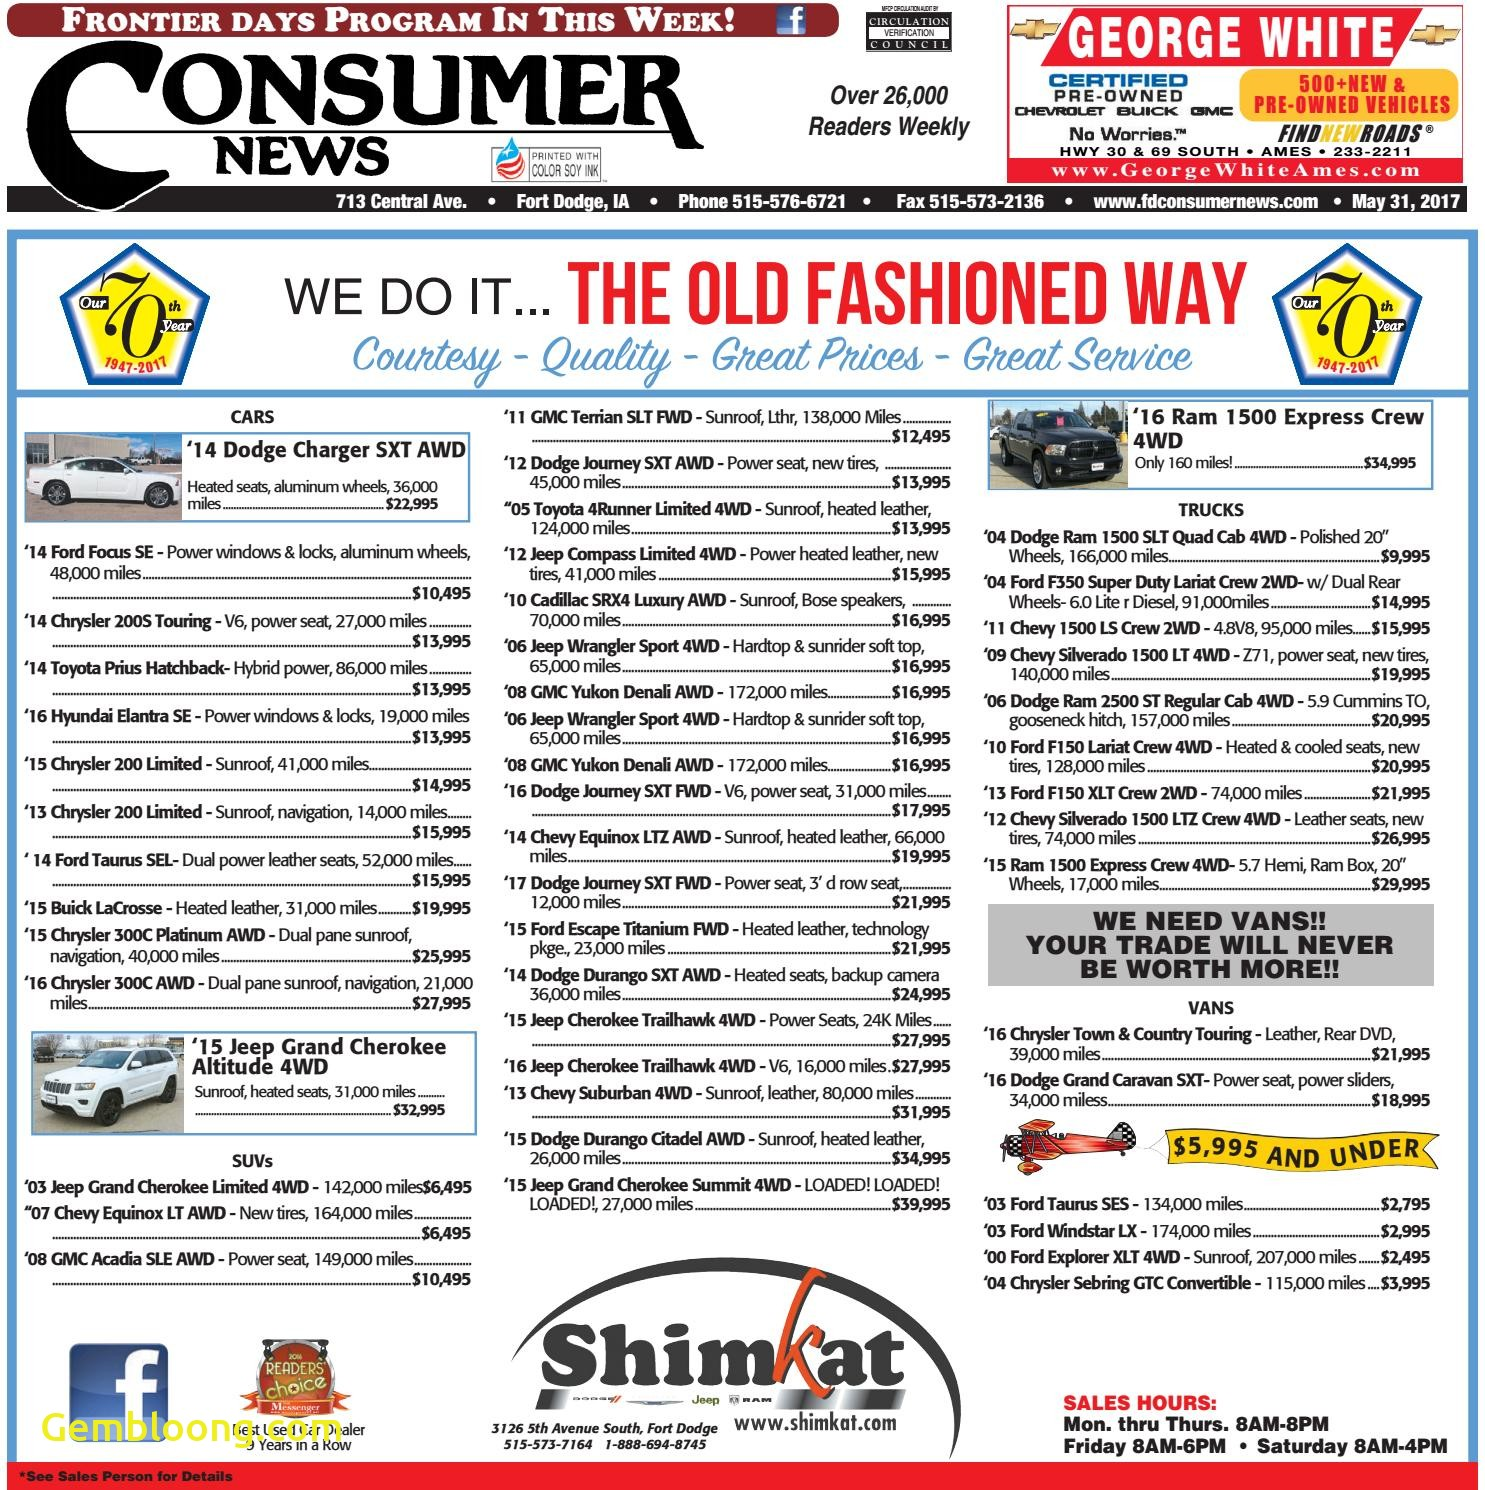 Free Carfax Information Best Of 05 31 17 Consumer News by Consumer News issuu